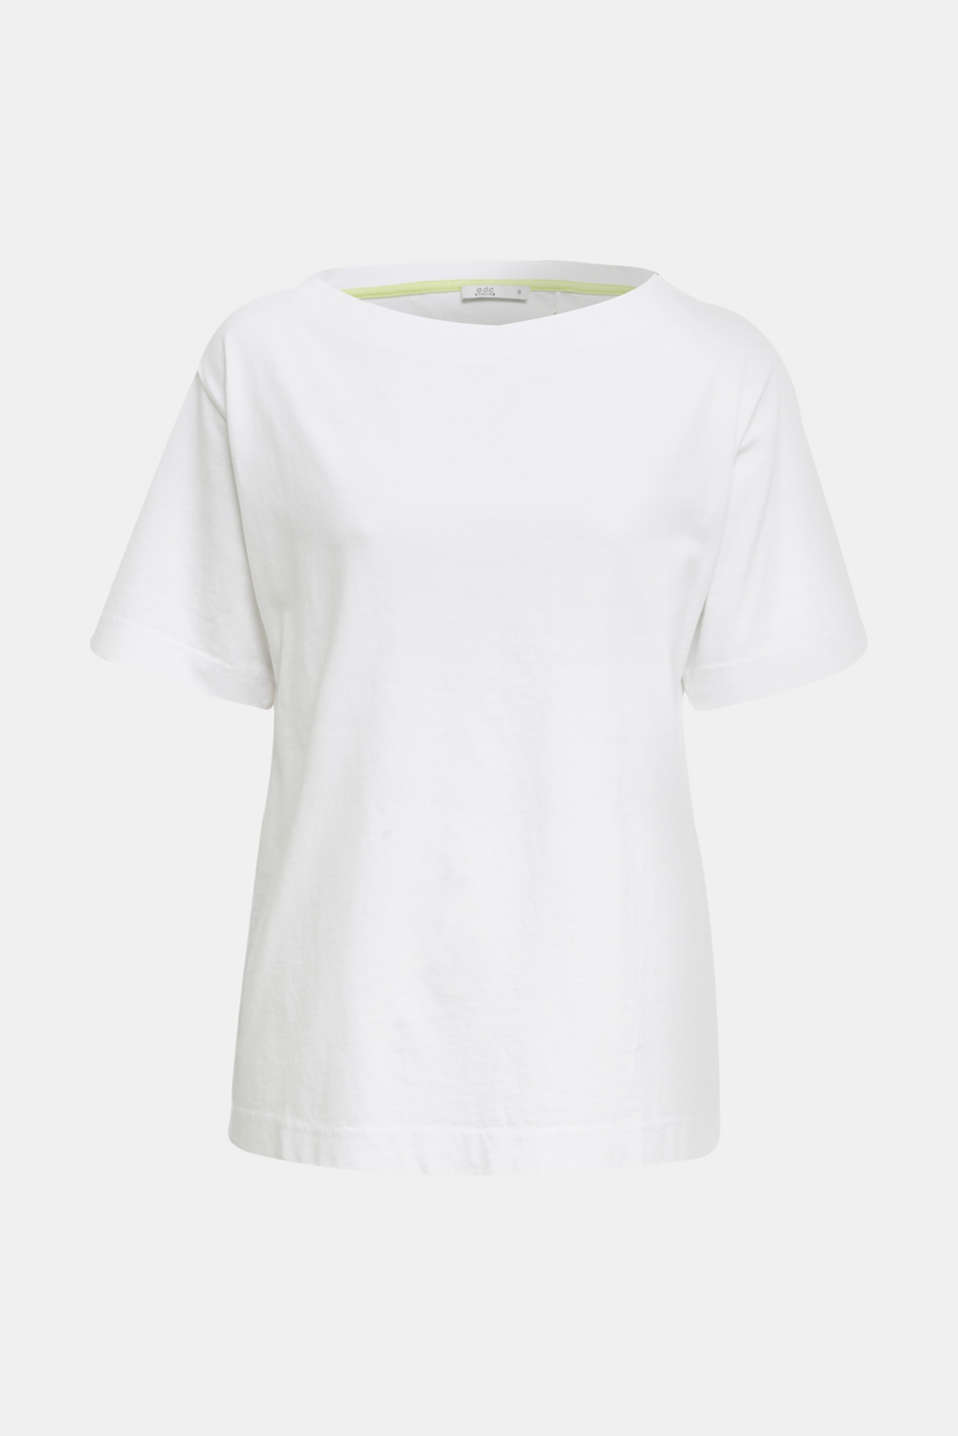 T-shirt in a washed look, 100% cotton, WHITE, detail image number 6